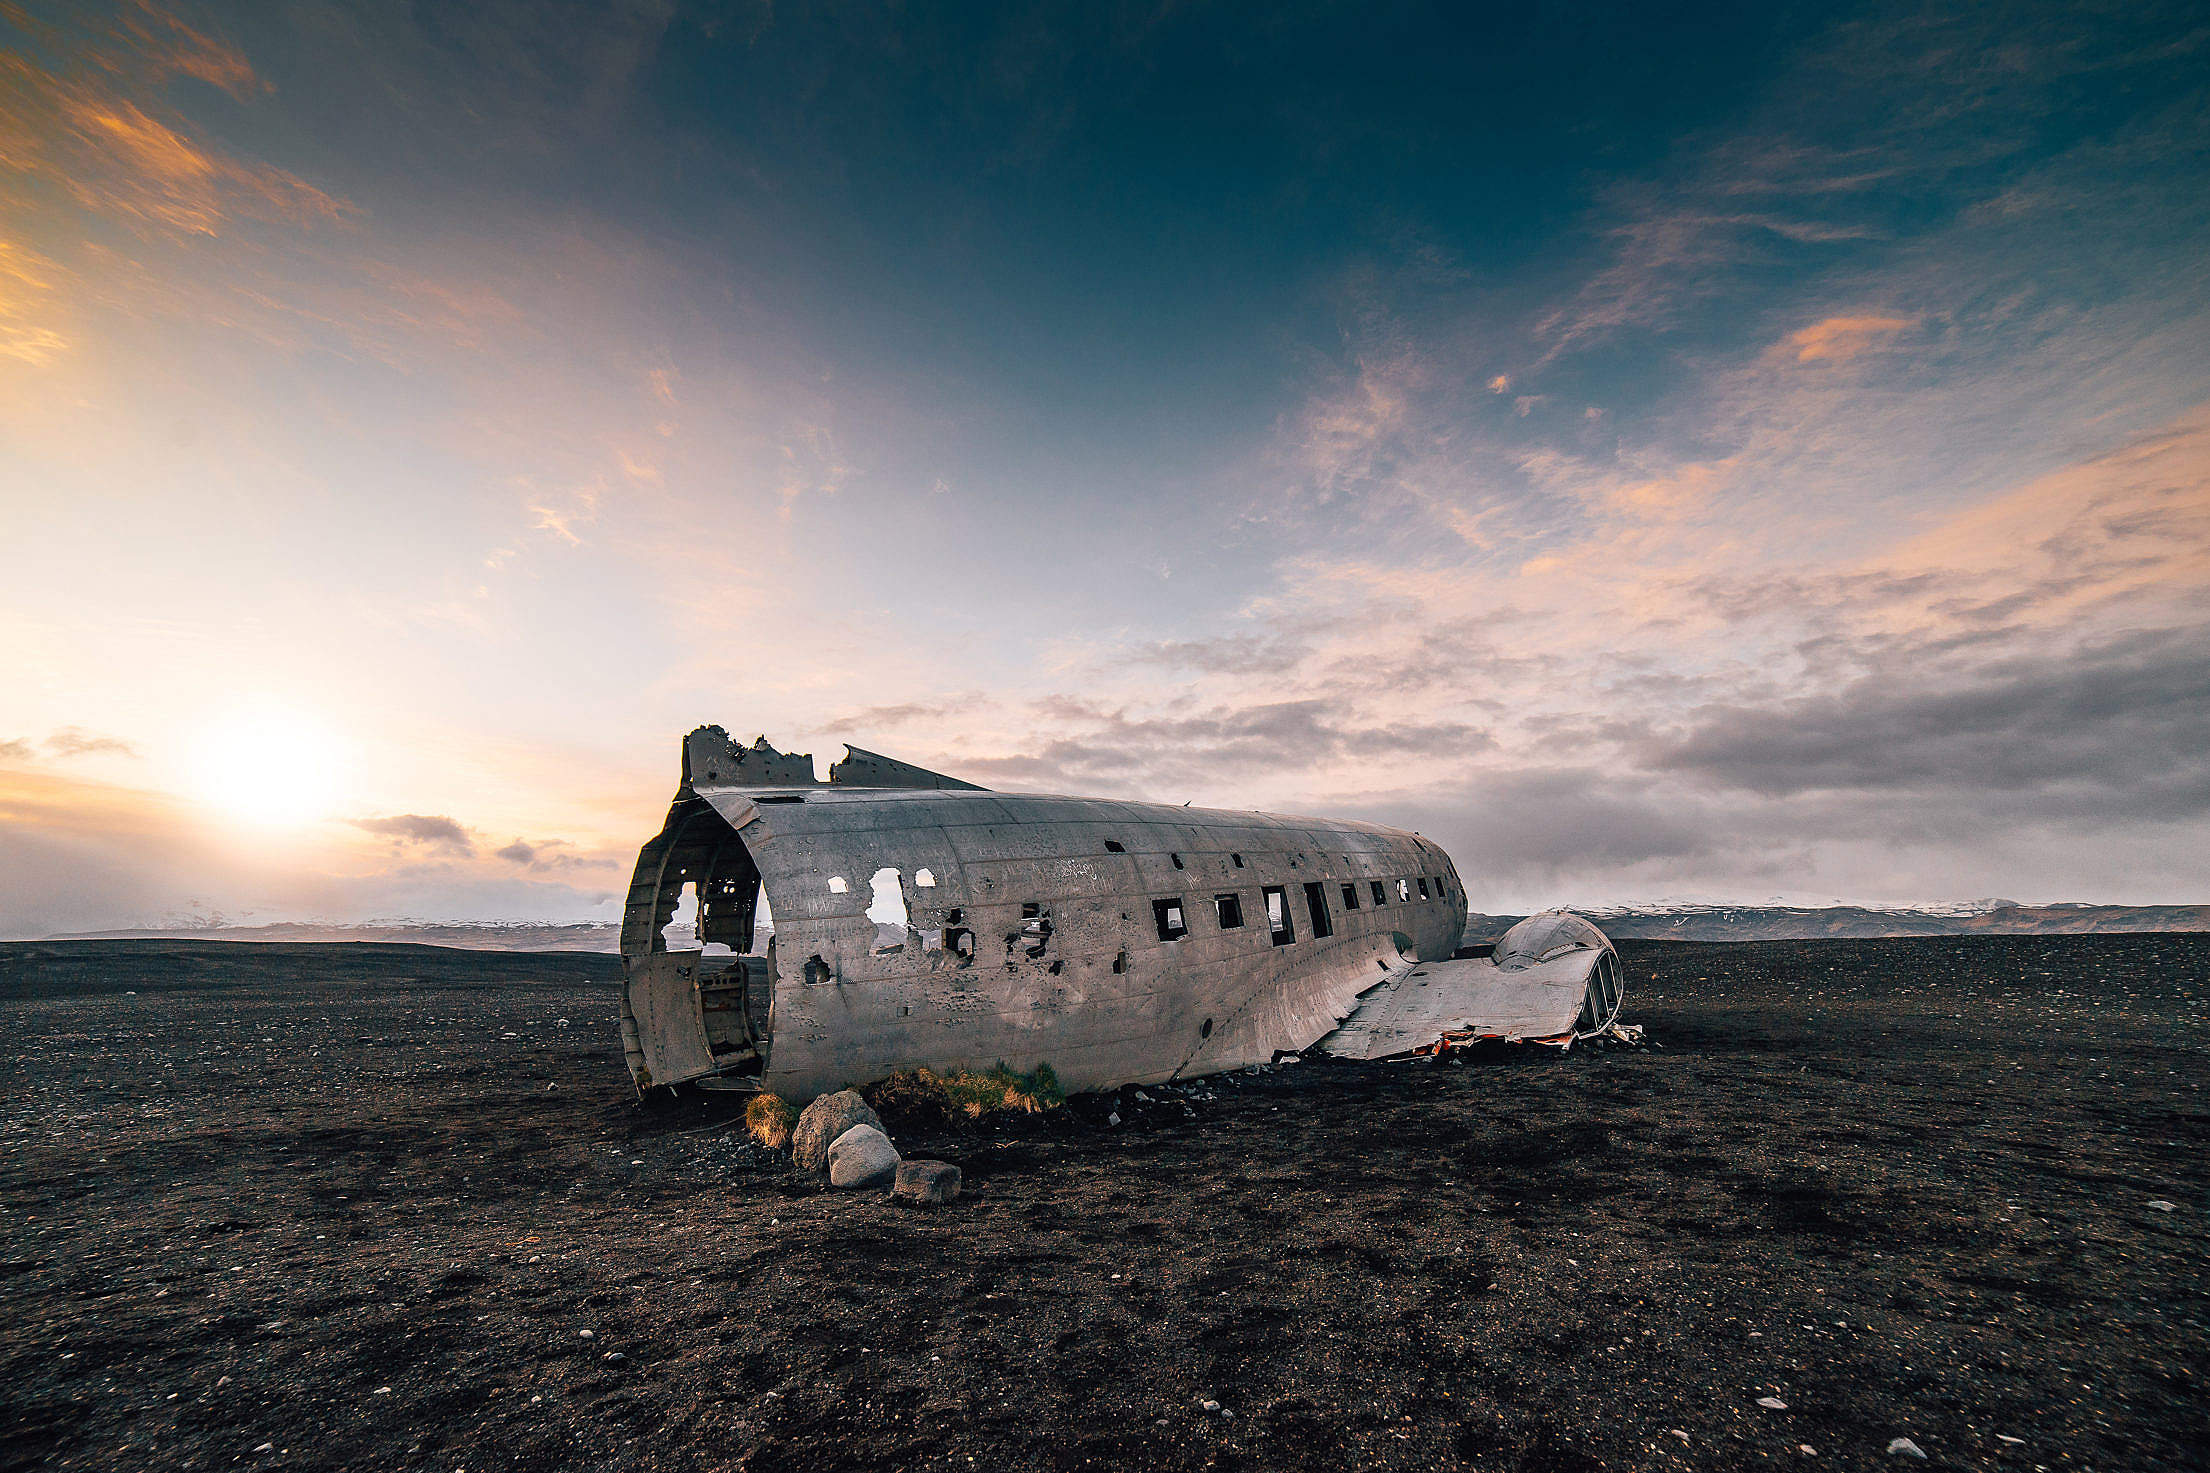 Shipwreck in Iceland Free Stock Photo